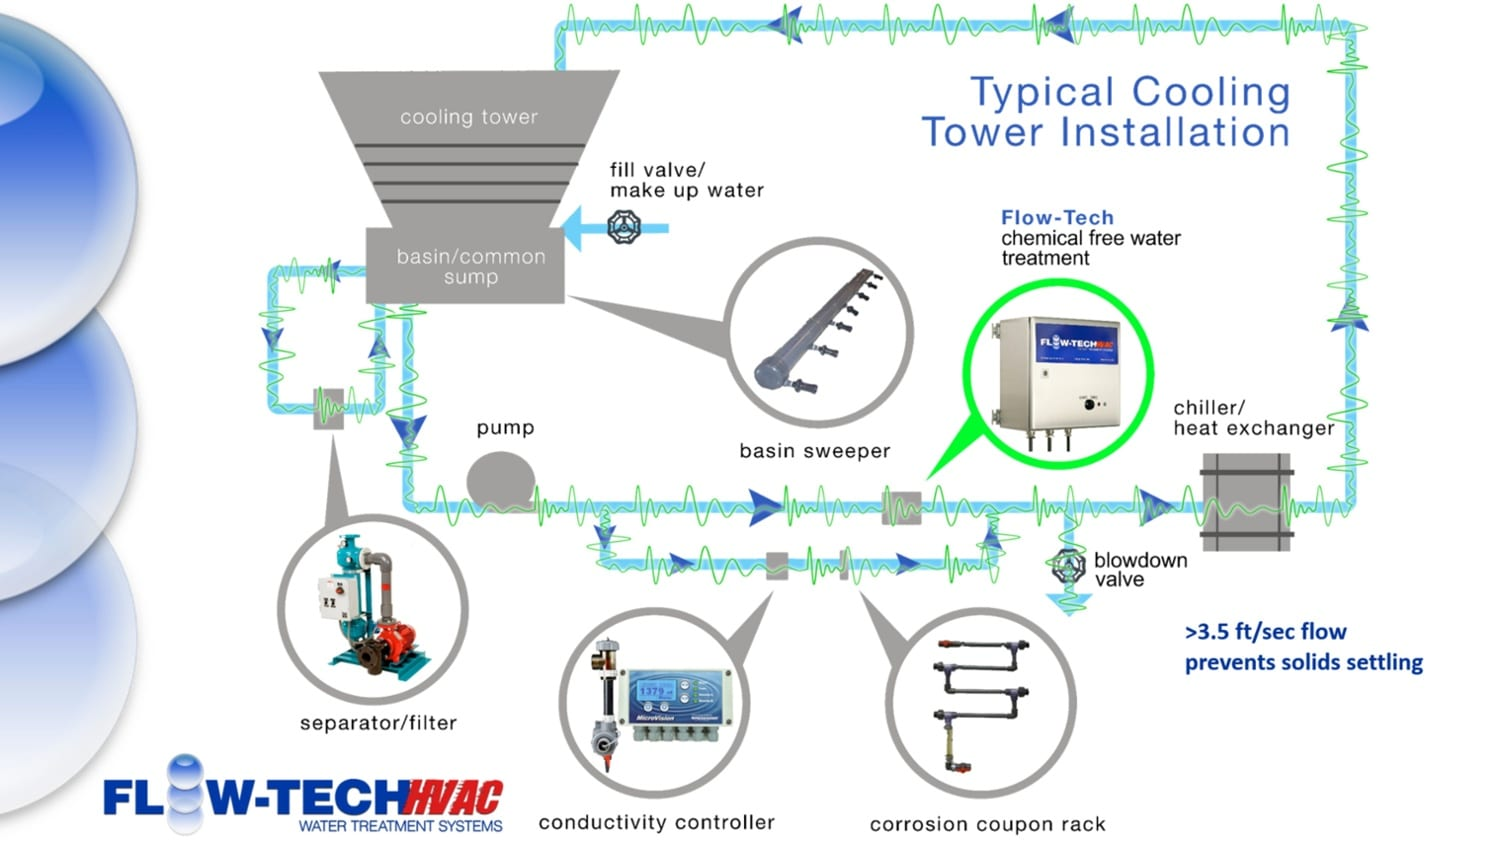 flow-tech water treatment